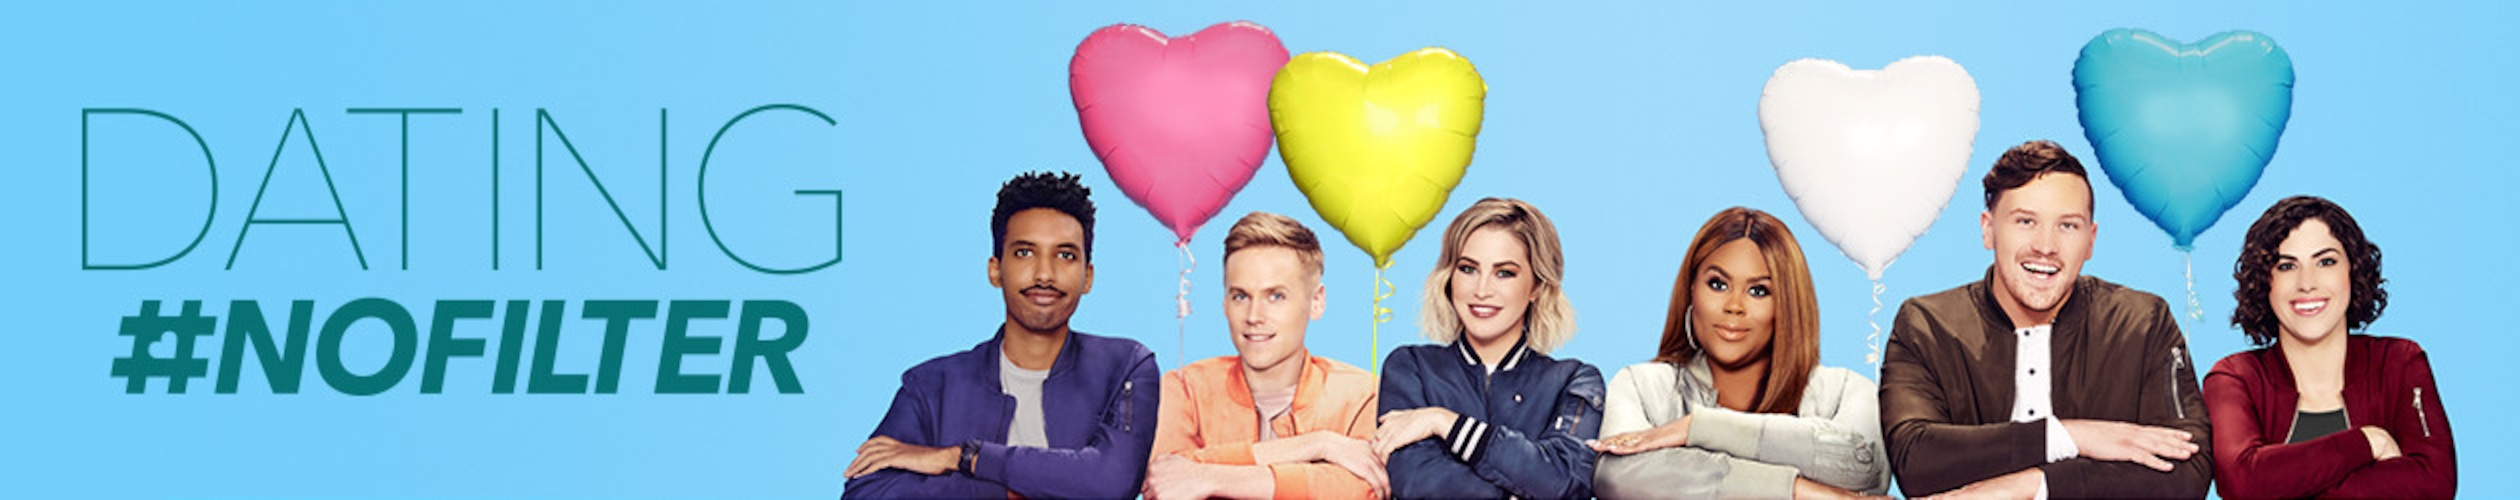 Dating #NoFilter Tune-In Banner